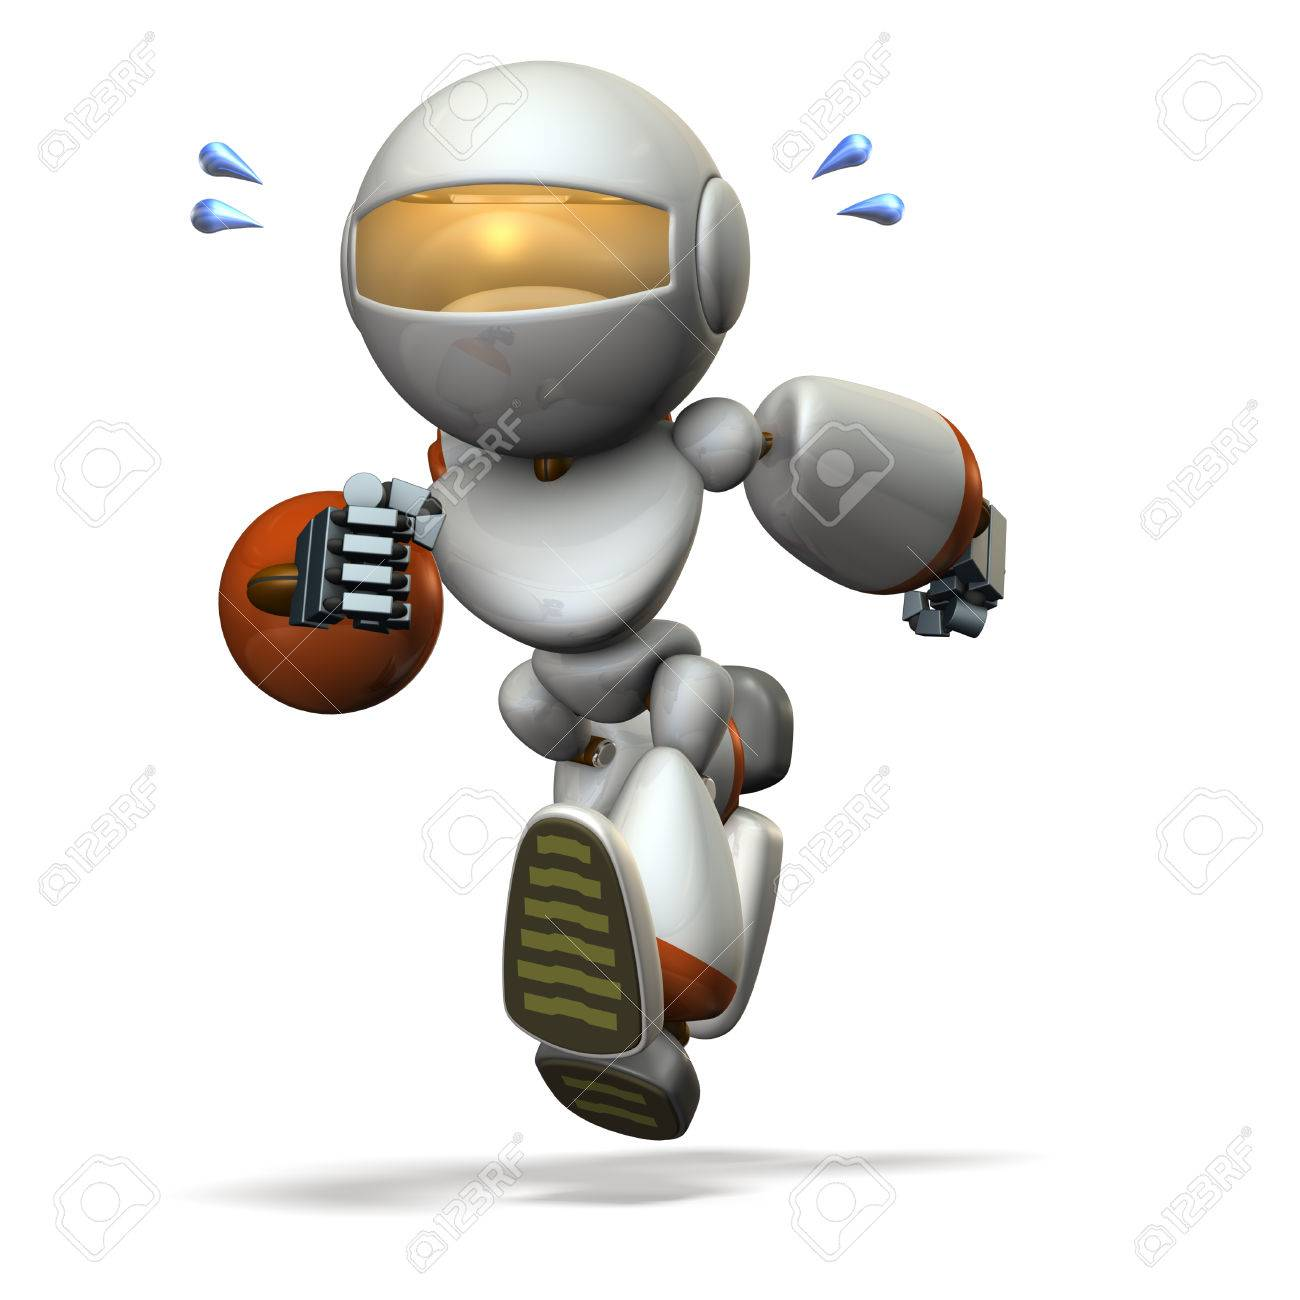 Children Robot Stock Illustration